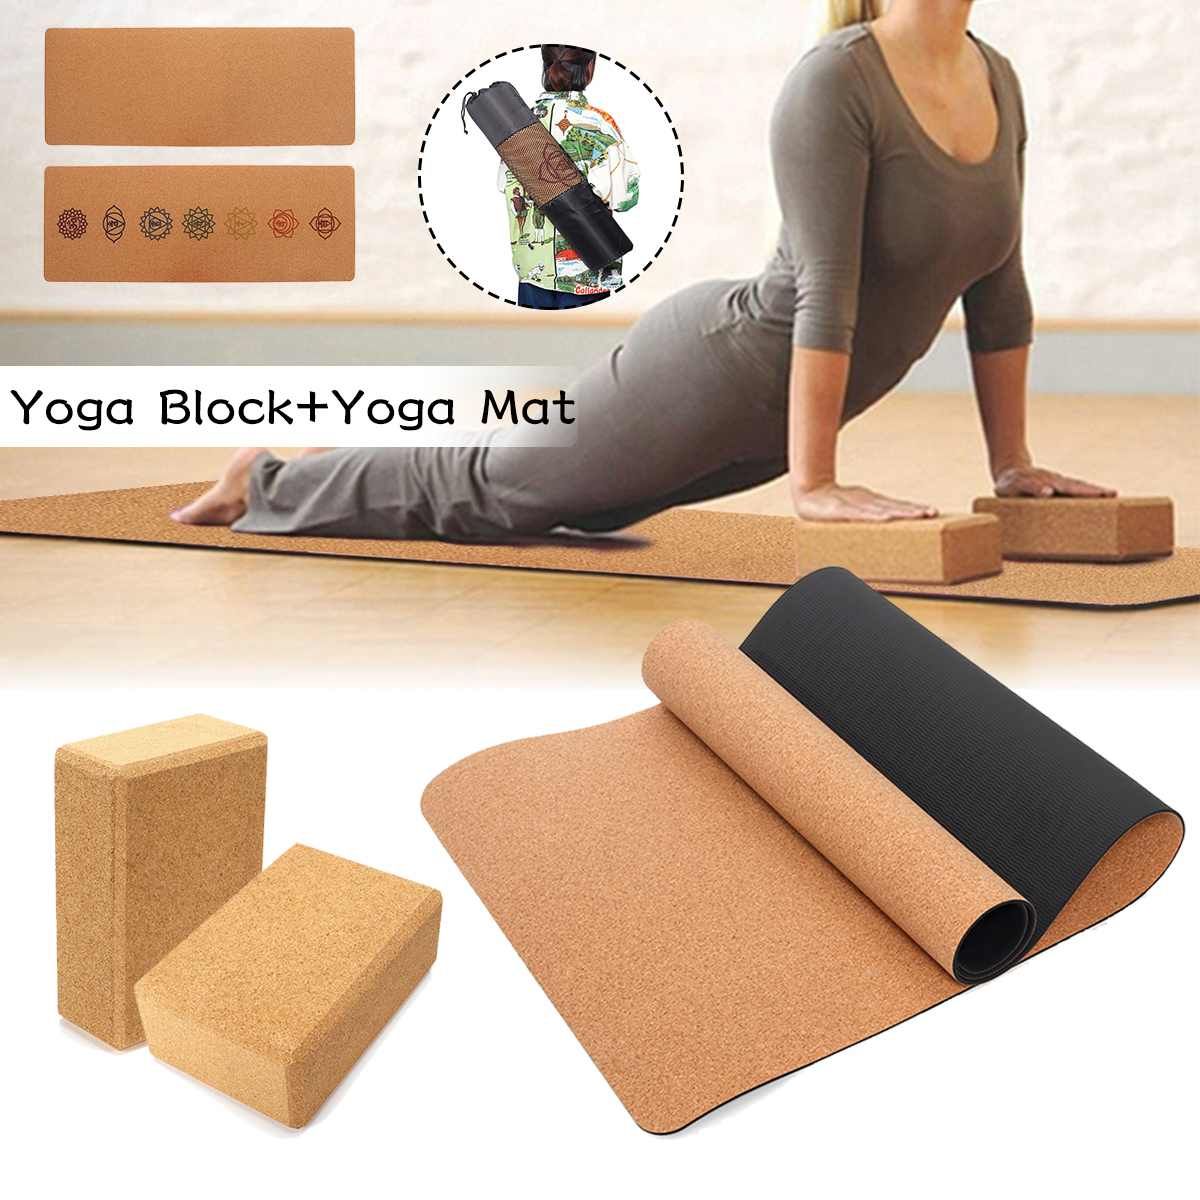 183X68cm Natural Cork TPE Yoga Mat With 2 Yoga Block Carry Bag Fitness Gym Sports Mats 5mm Non-slip Pilates Exercise Pads